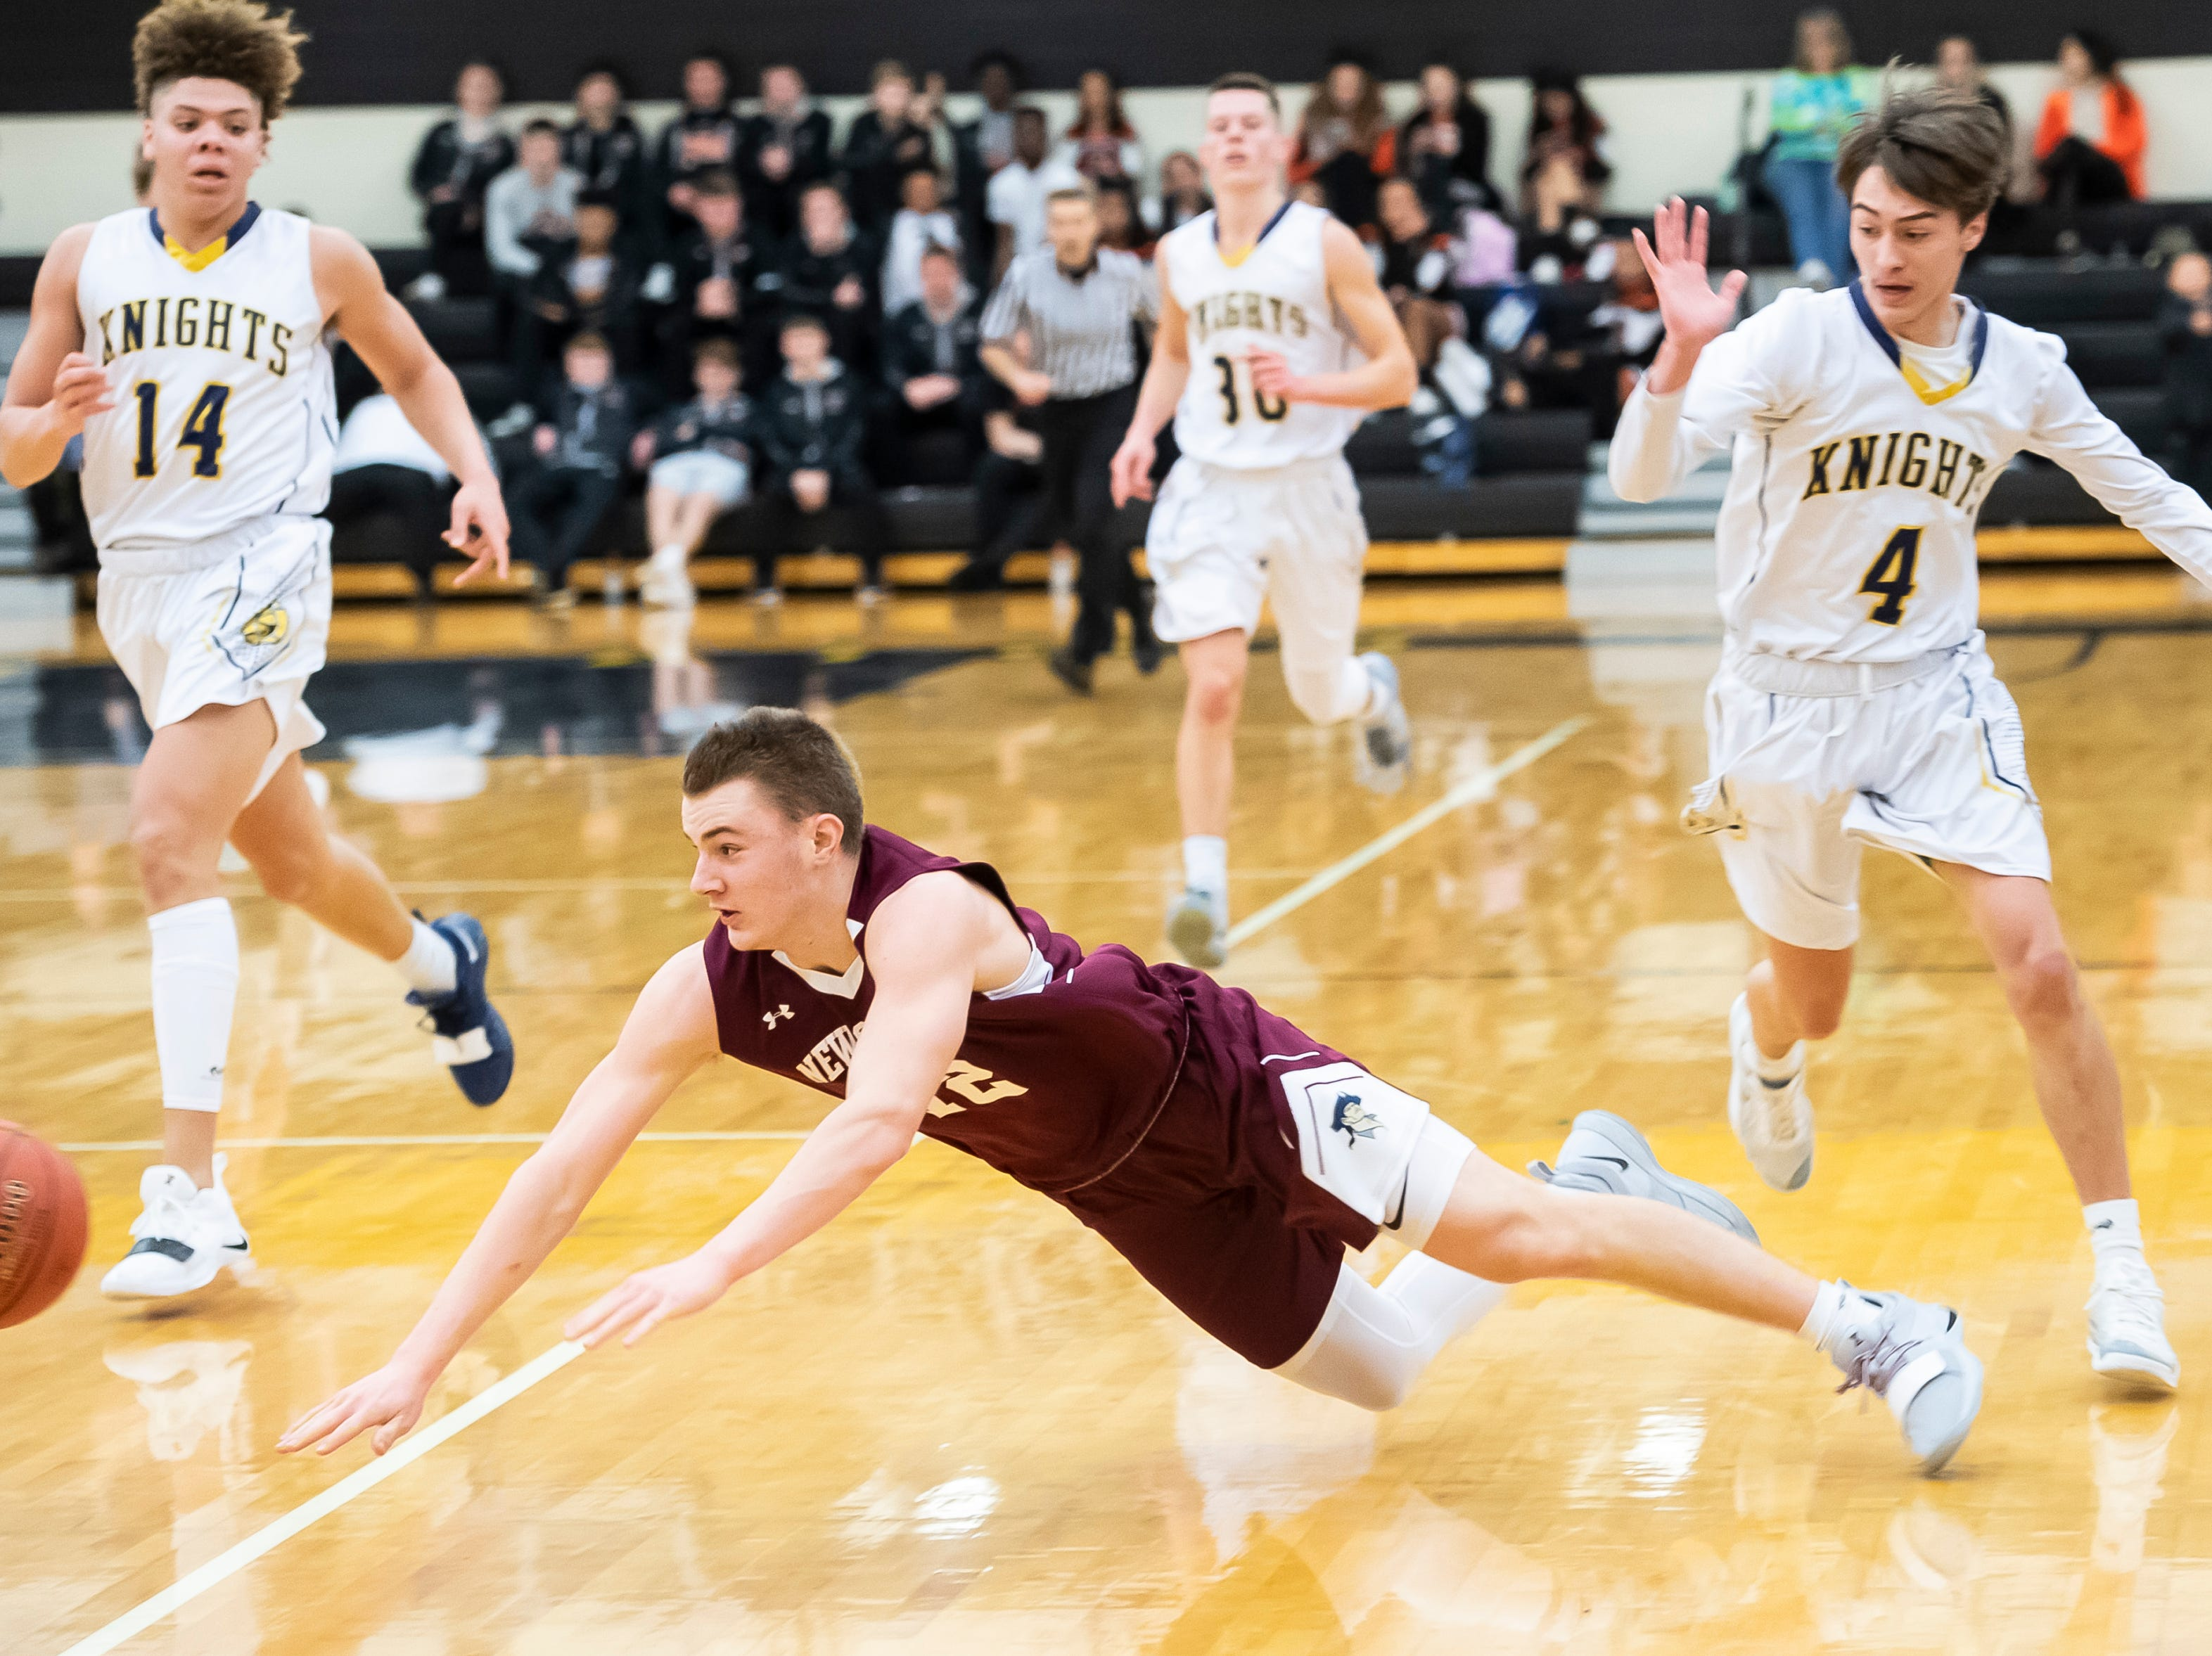 New Oxford's Brayden Long slips while driving down the court during play against Eastern York in a YAIAA quarterfinal game at Red Lion High School Saturday, February 9, 2019. The Colonials won 54-44.